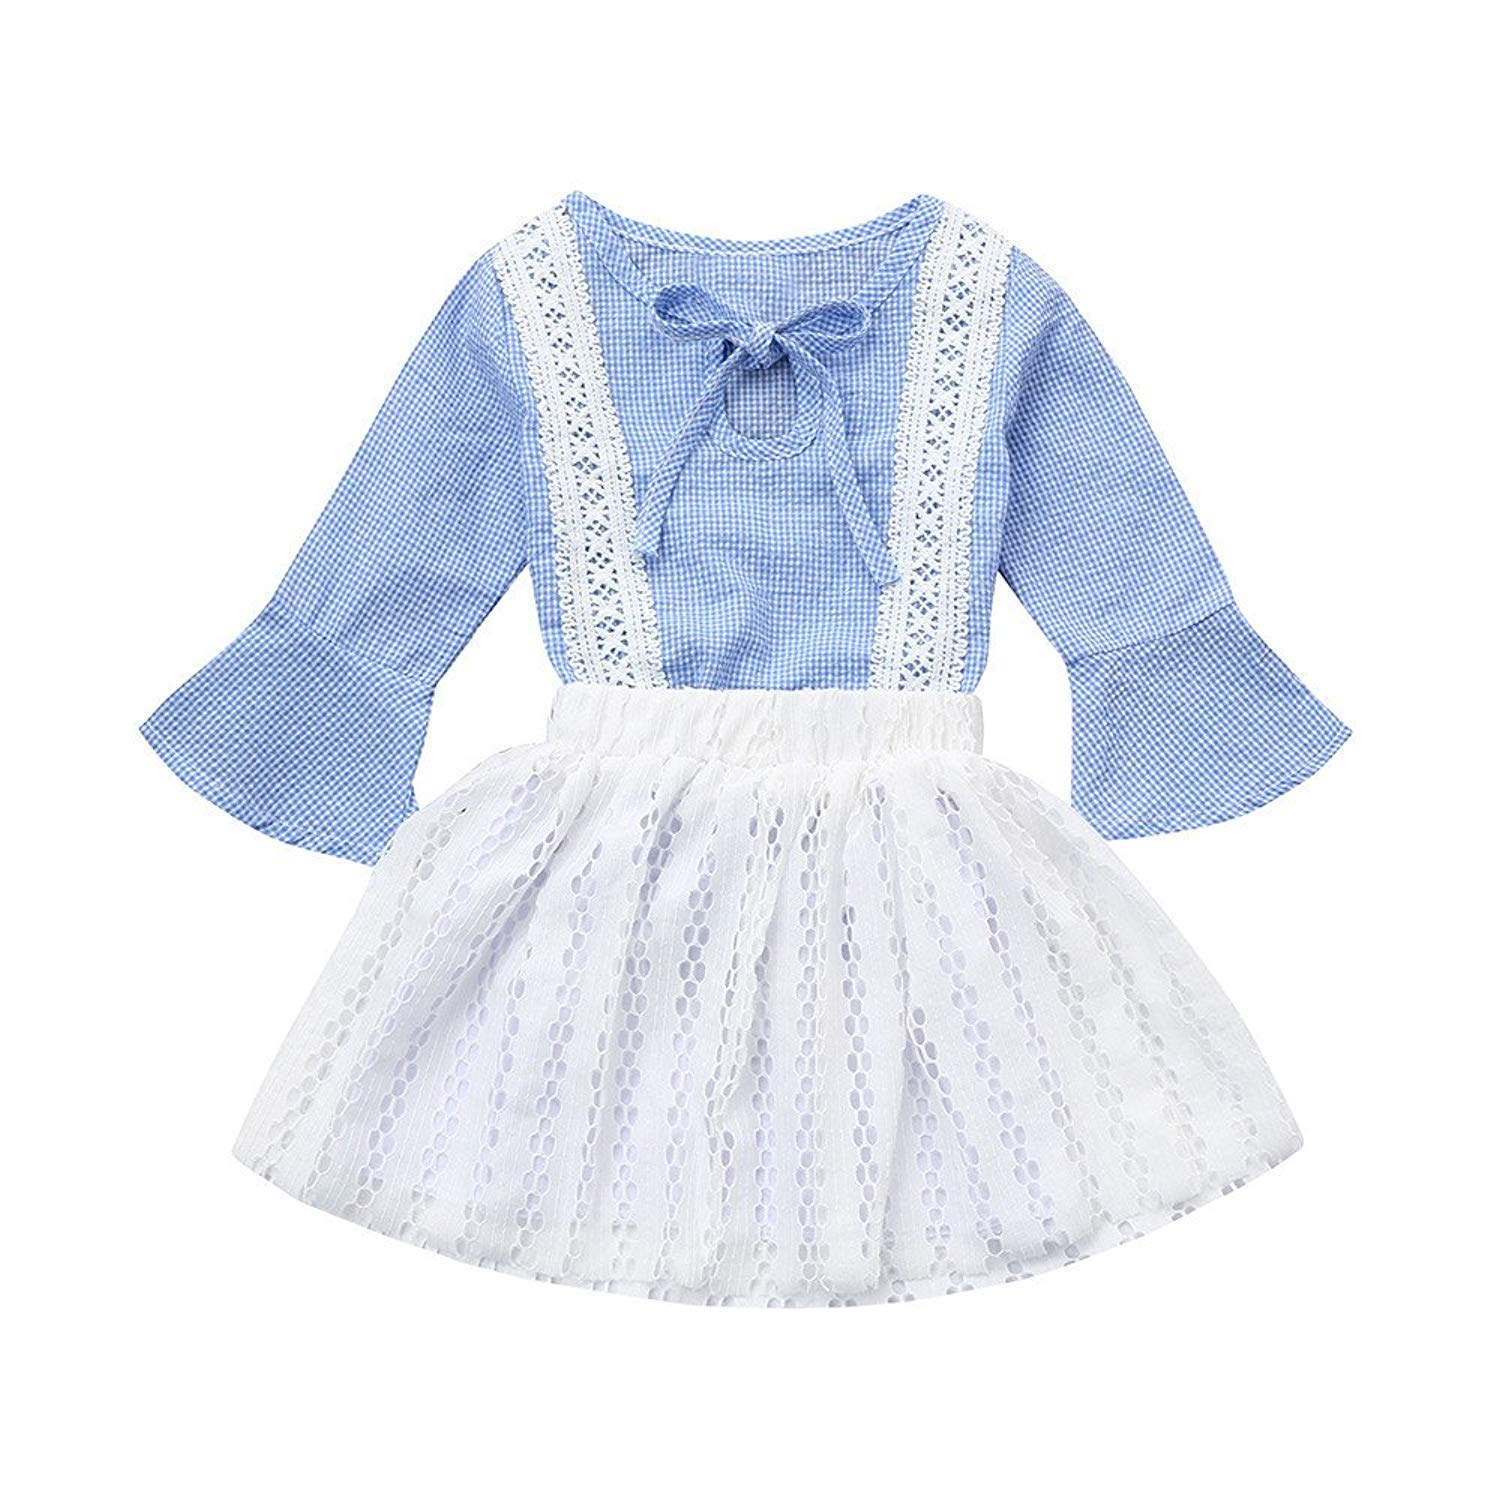 Memela Baby Christmas Outfit,Christmas Kids Baby Striped Lace T Shirt Tops Pants Outfits Set2-6Year